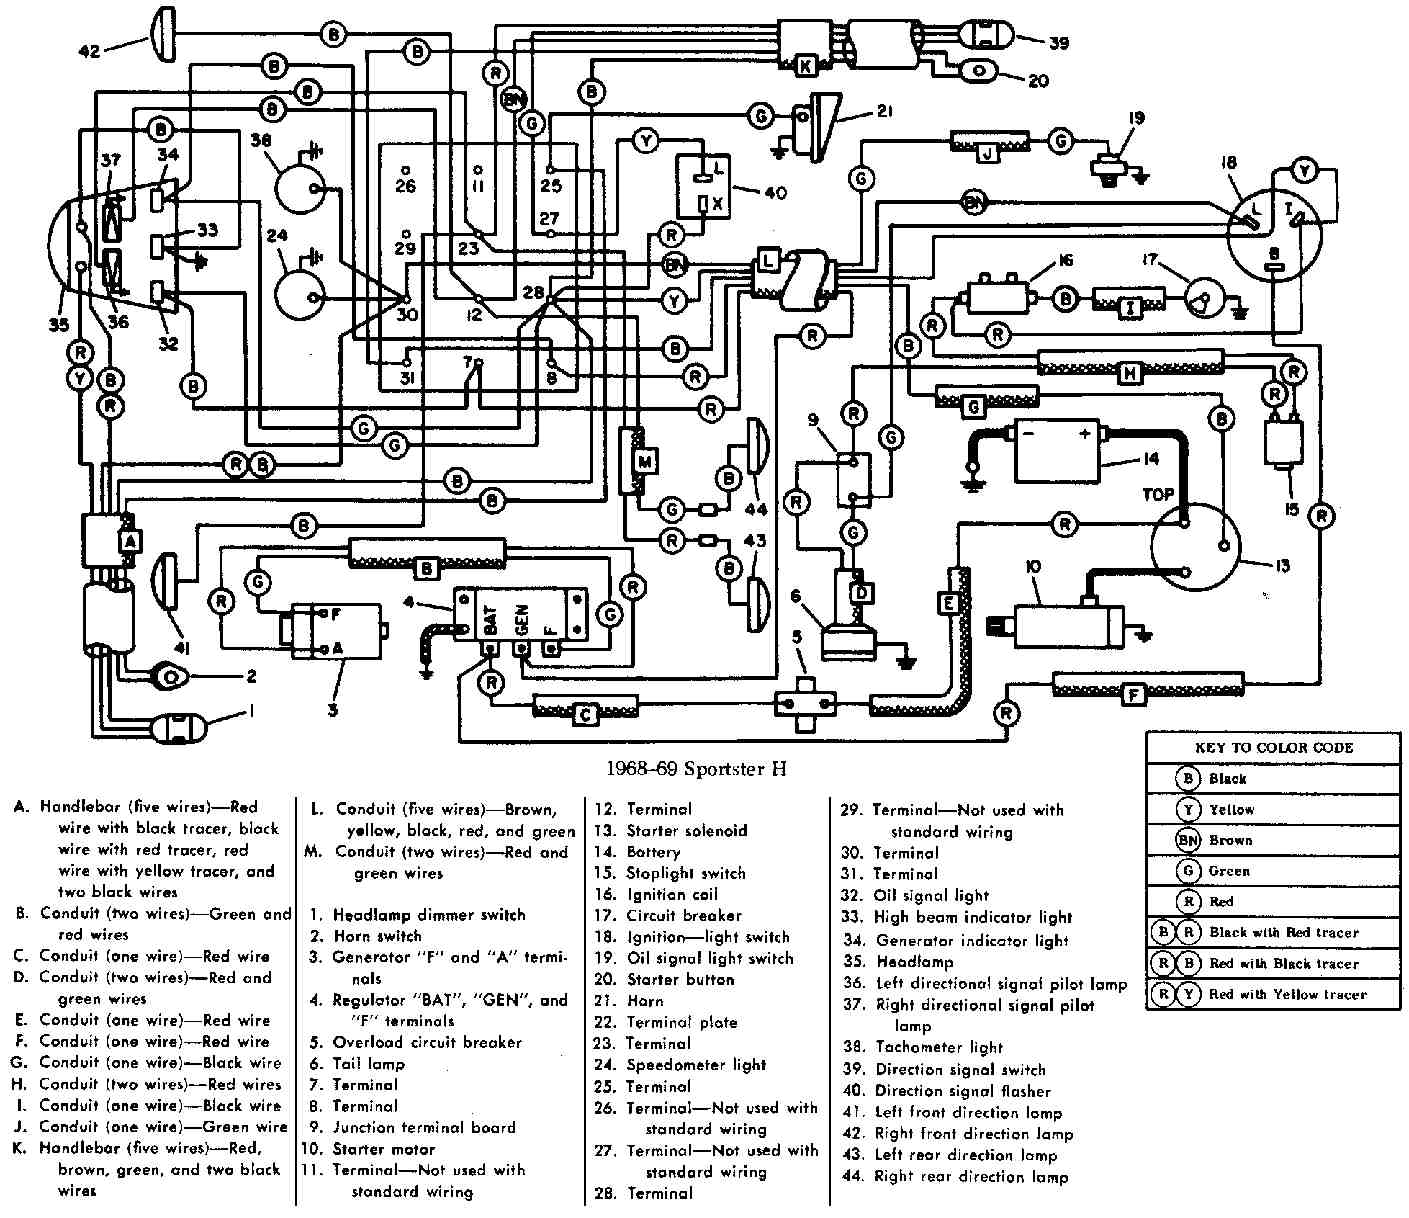 [SCHEMATICS_4FR]  1991 Flhtc Harley Wiring Harness Diagram - Marshin Atv Wiring Diagram for Wiring  Diagram Schematics | 1992 Harley Davidson Ultra Glide Wiring Diagram |  | Wiring Diagram Schematics